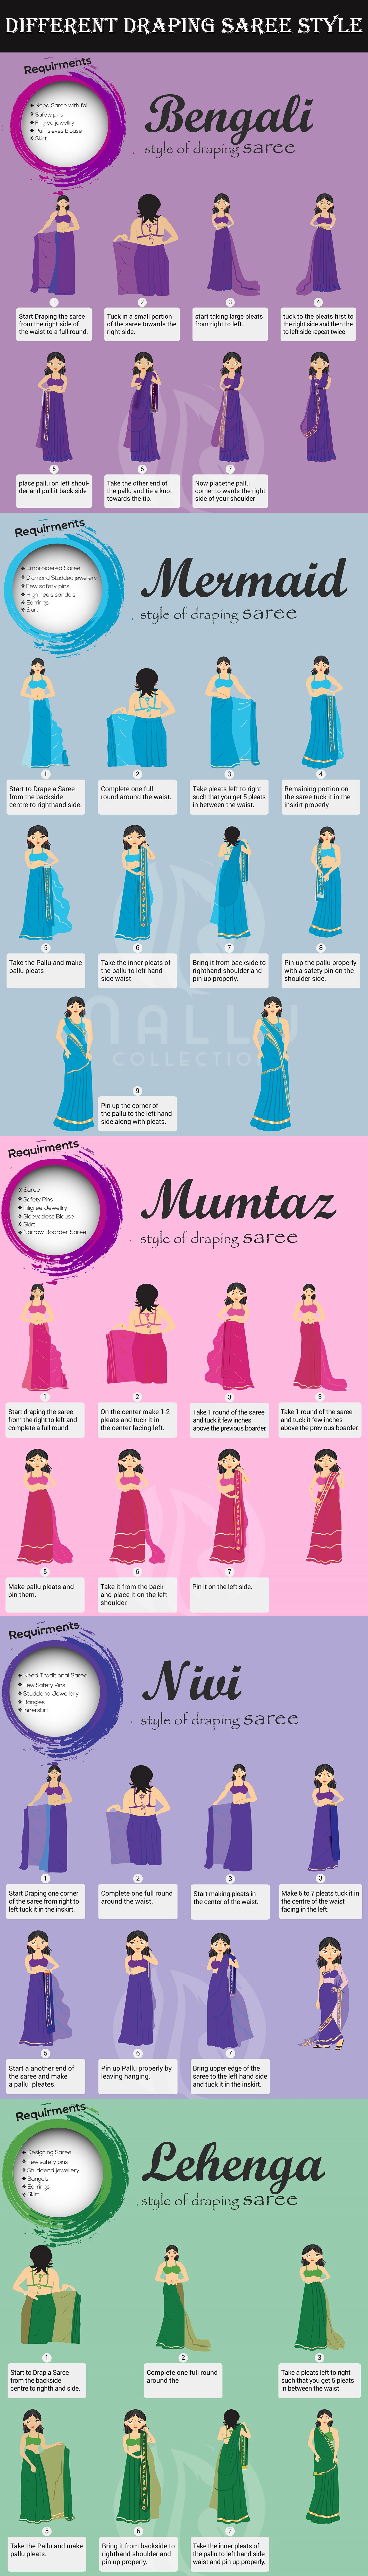 11 Casual Ways To Drape A Saree Dressing Pinterest Moeszaffir Gauri Folded Clutch Bag Blue Silver Ampamp Black Infographics Of Different Draping Styles Sareedrape